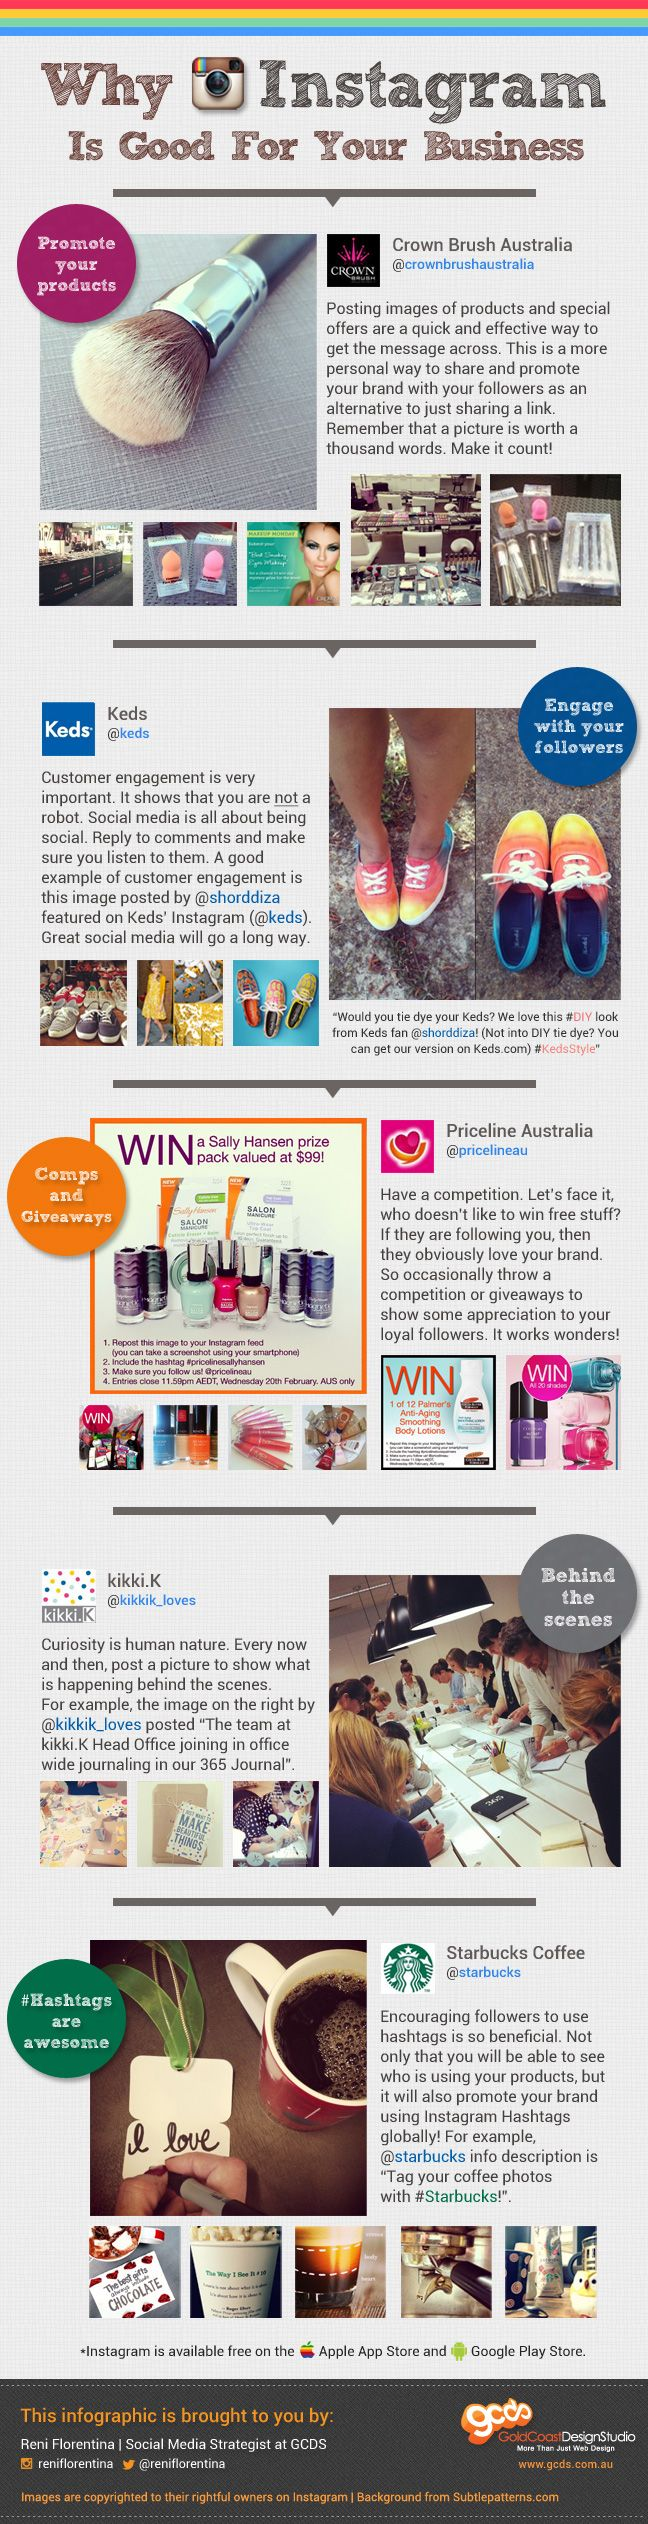 why-instagram-is-good-for-your-business_51b141efdf845.jpg (648×2524)